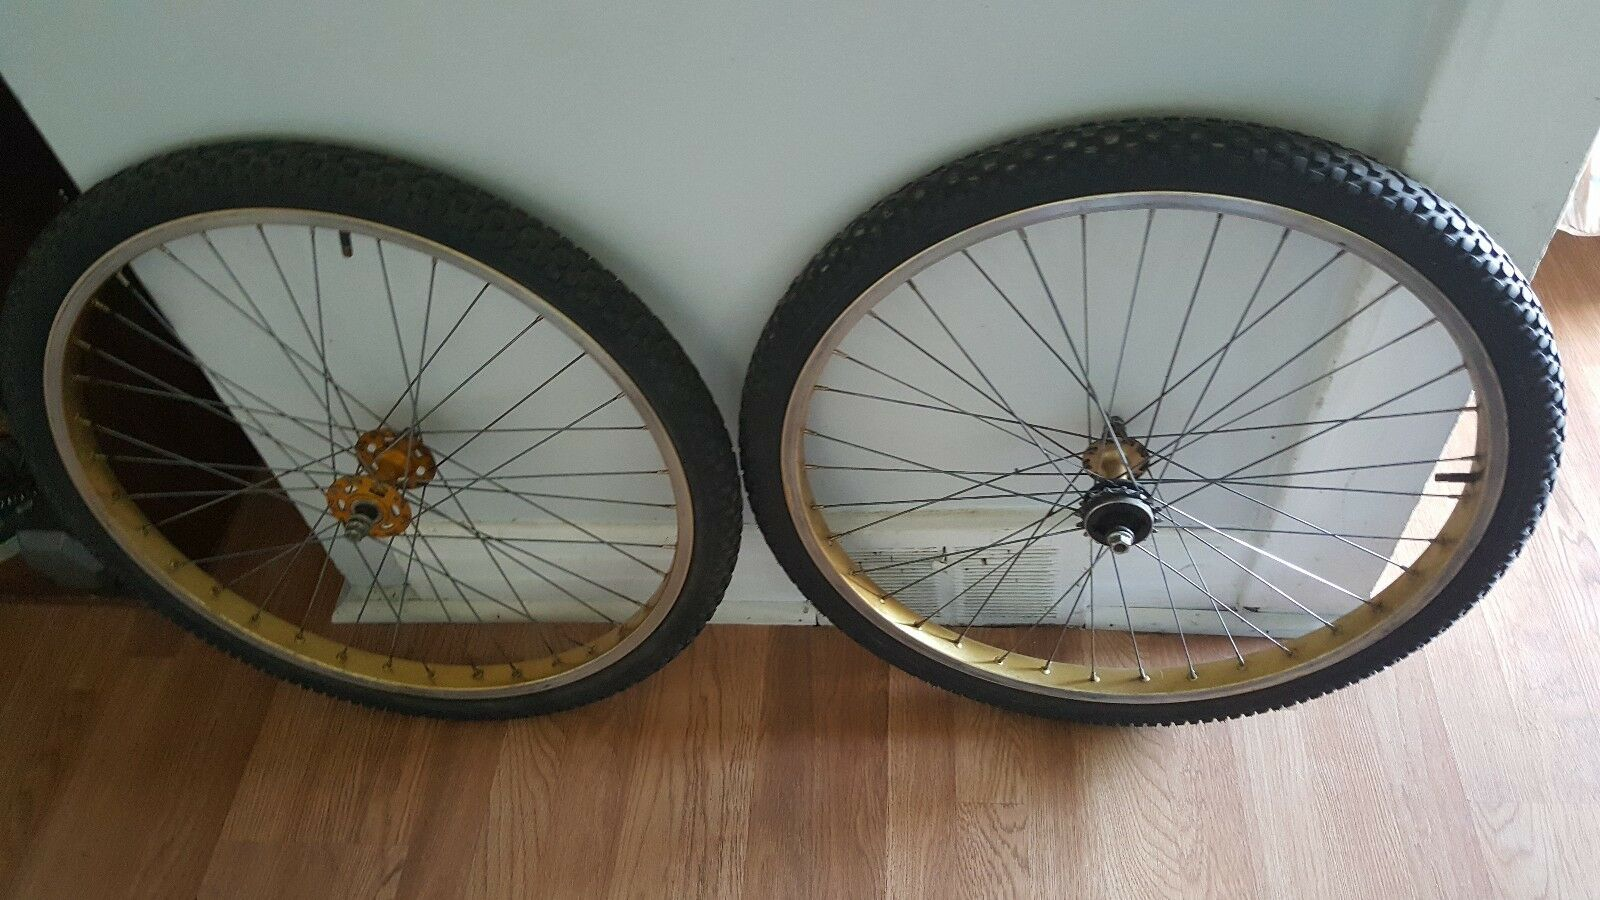 OLD SCHOOL BMX 1981 gold SCHWINN KING STING 26 IN RIMS BONTRAGER TIRES VINTAGE